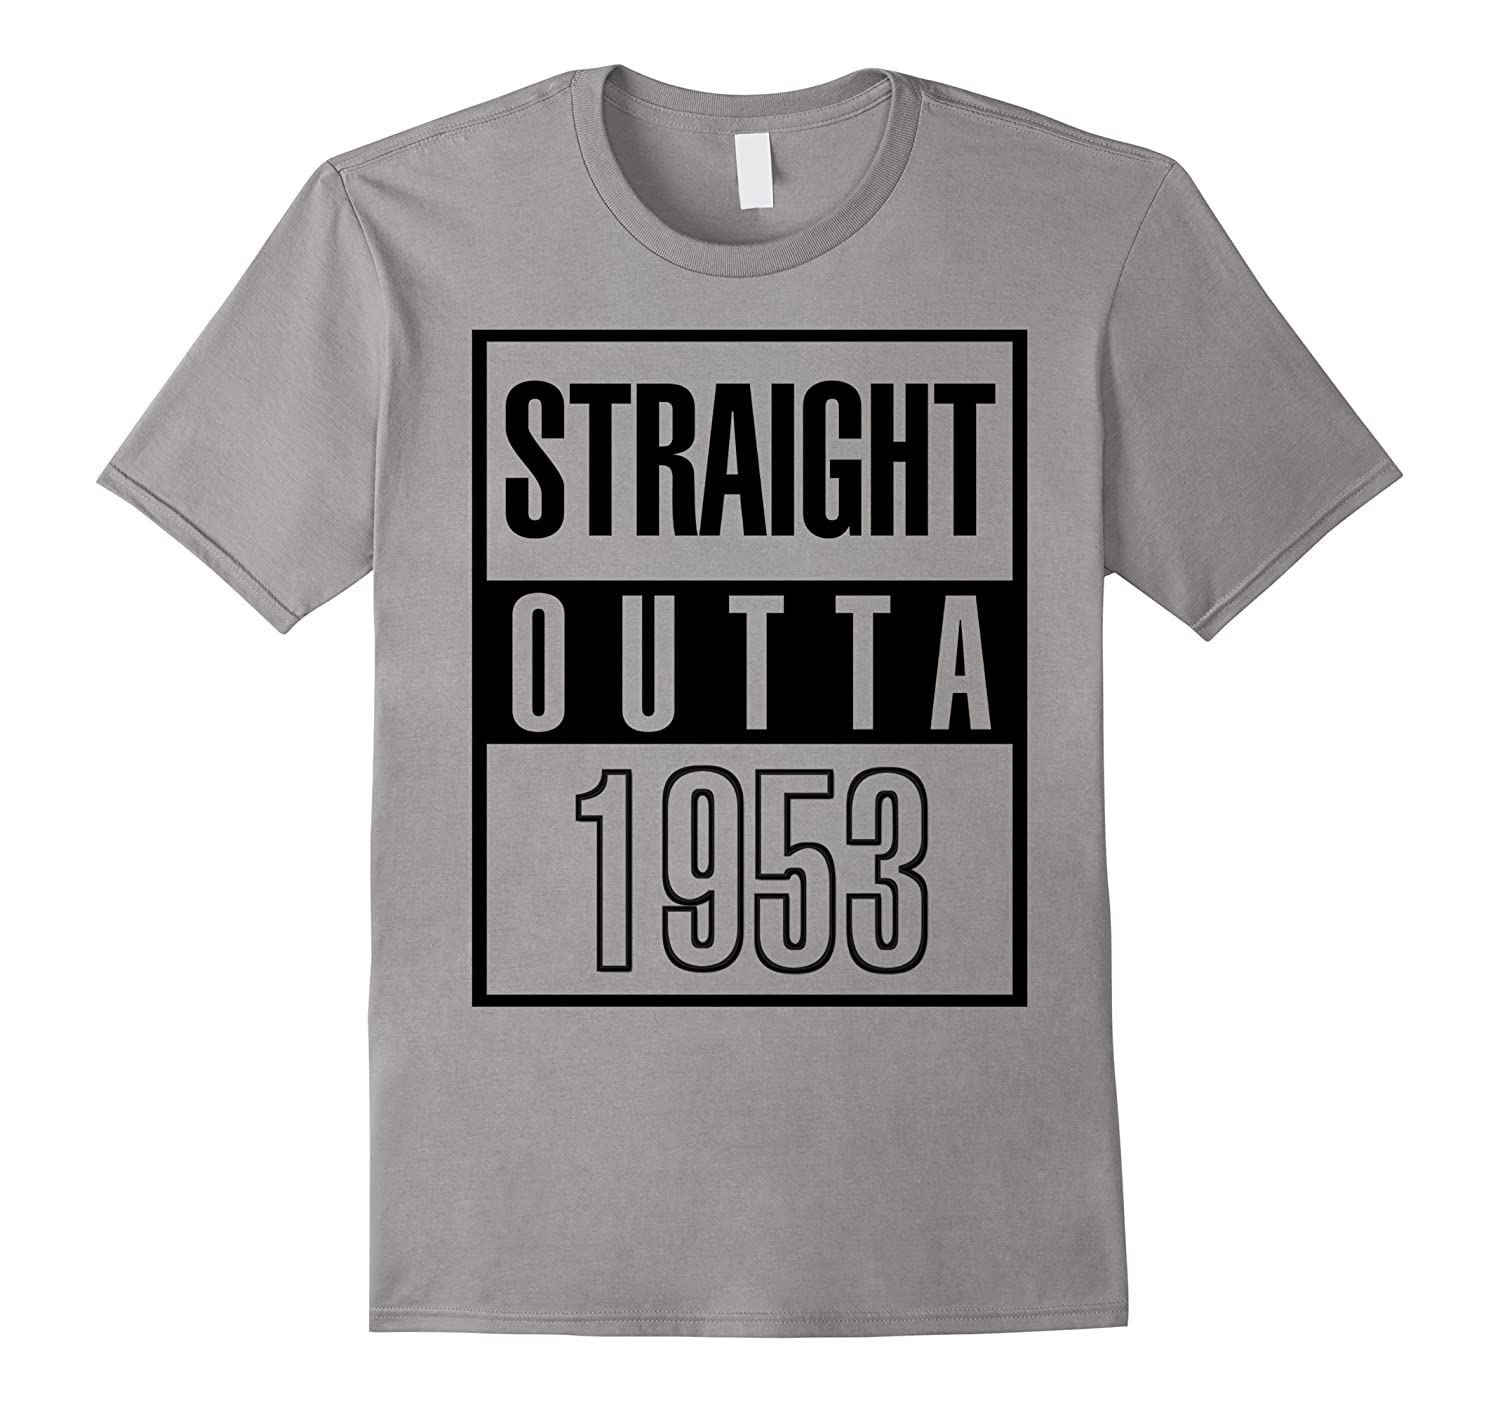 1953 64th Years Old Funny Birthday Gift T-Shirt-4LVS